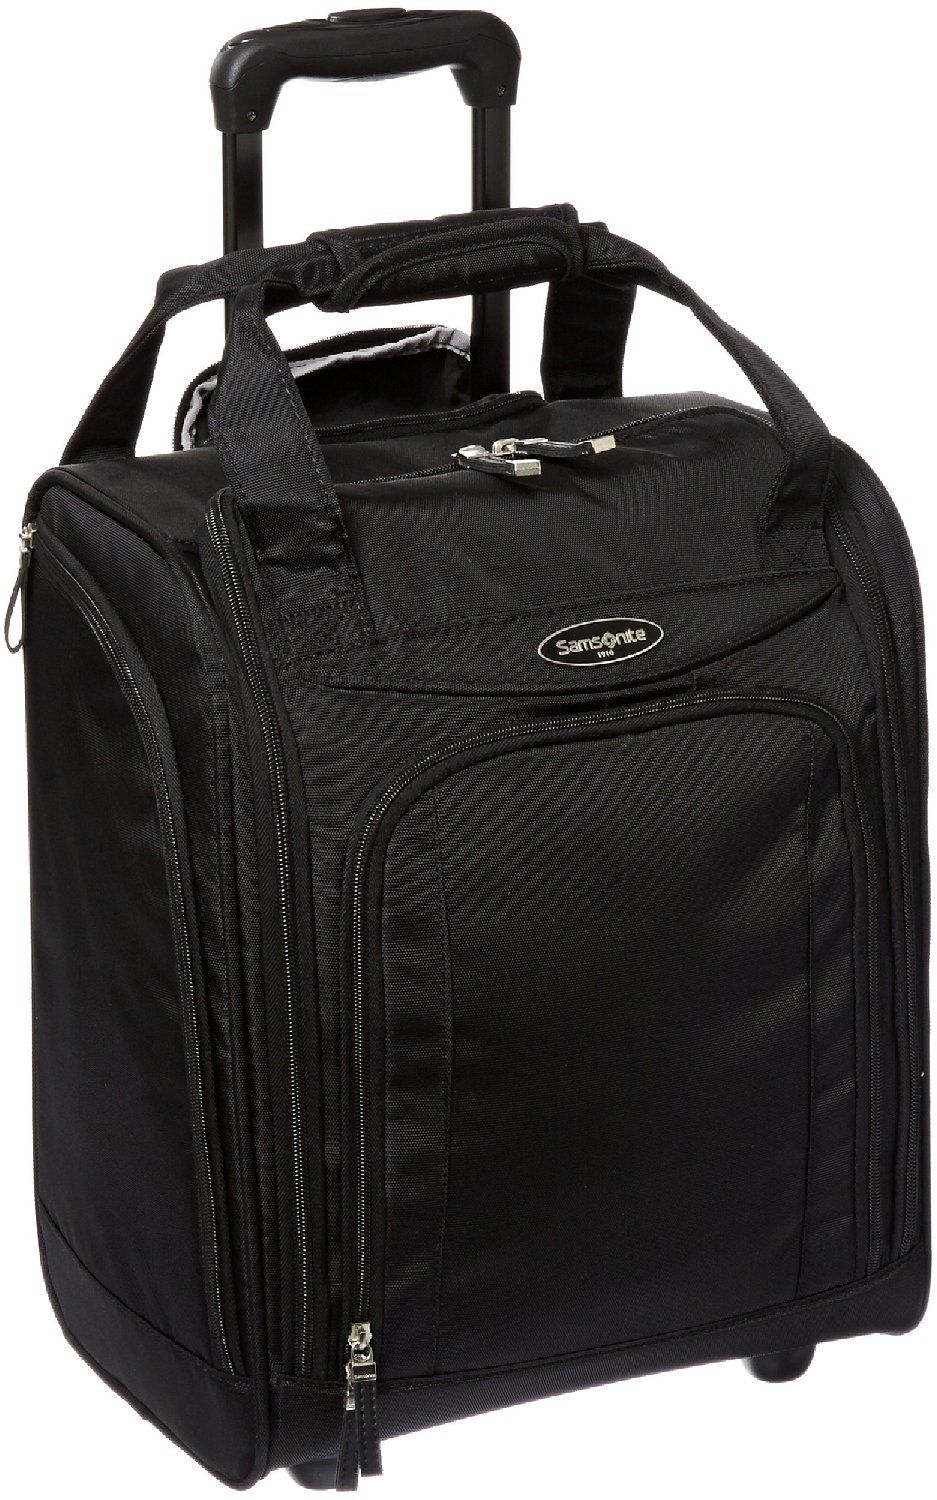 Best of Top 10 Best Carry On Luggage in 2016 Reviews | Clothes ...